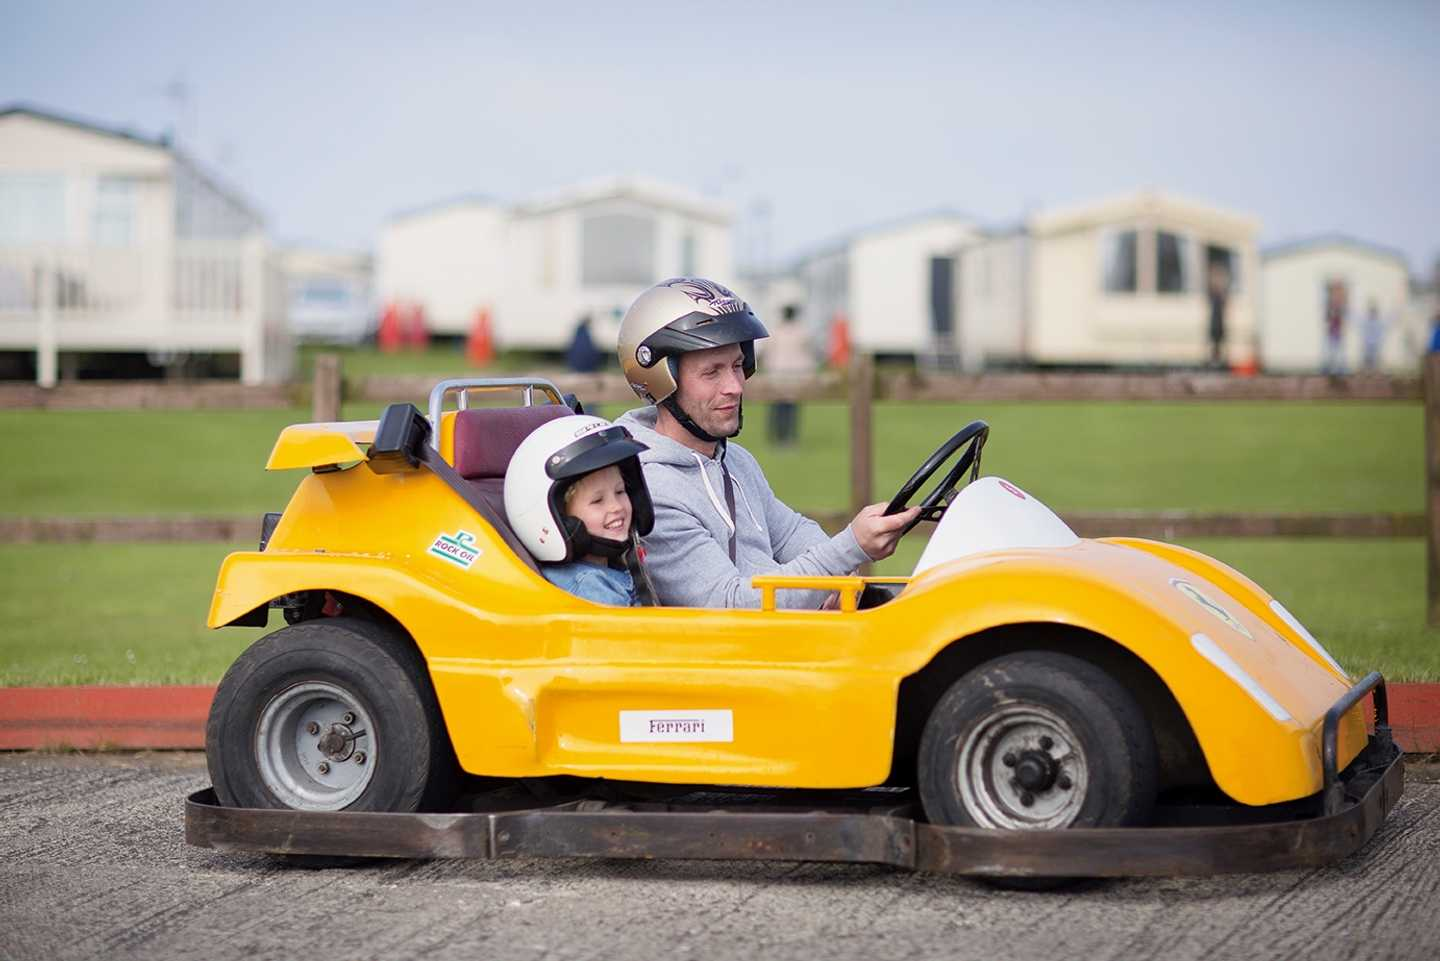 A father and son driving a go-kart